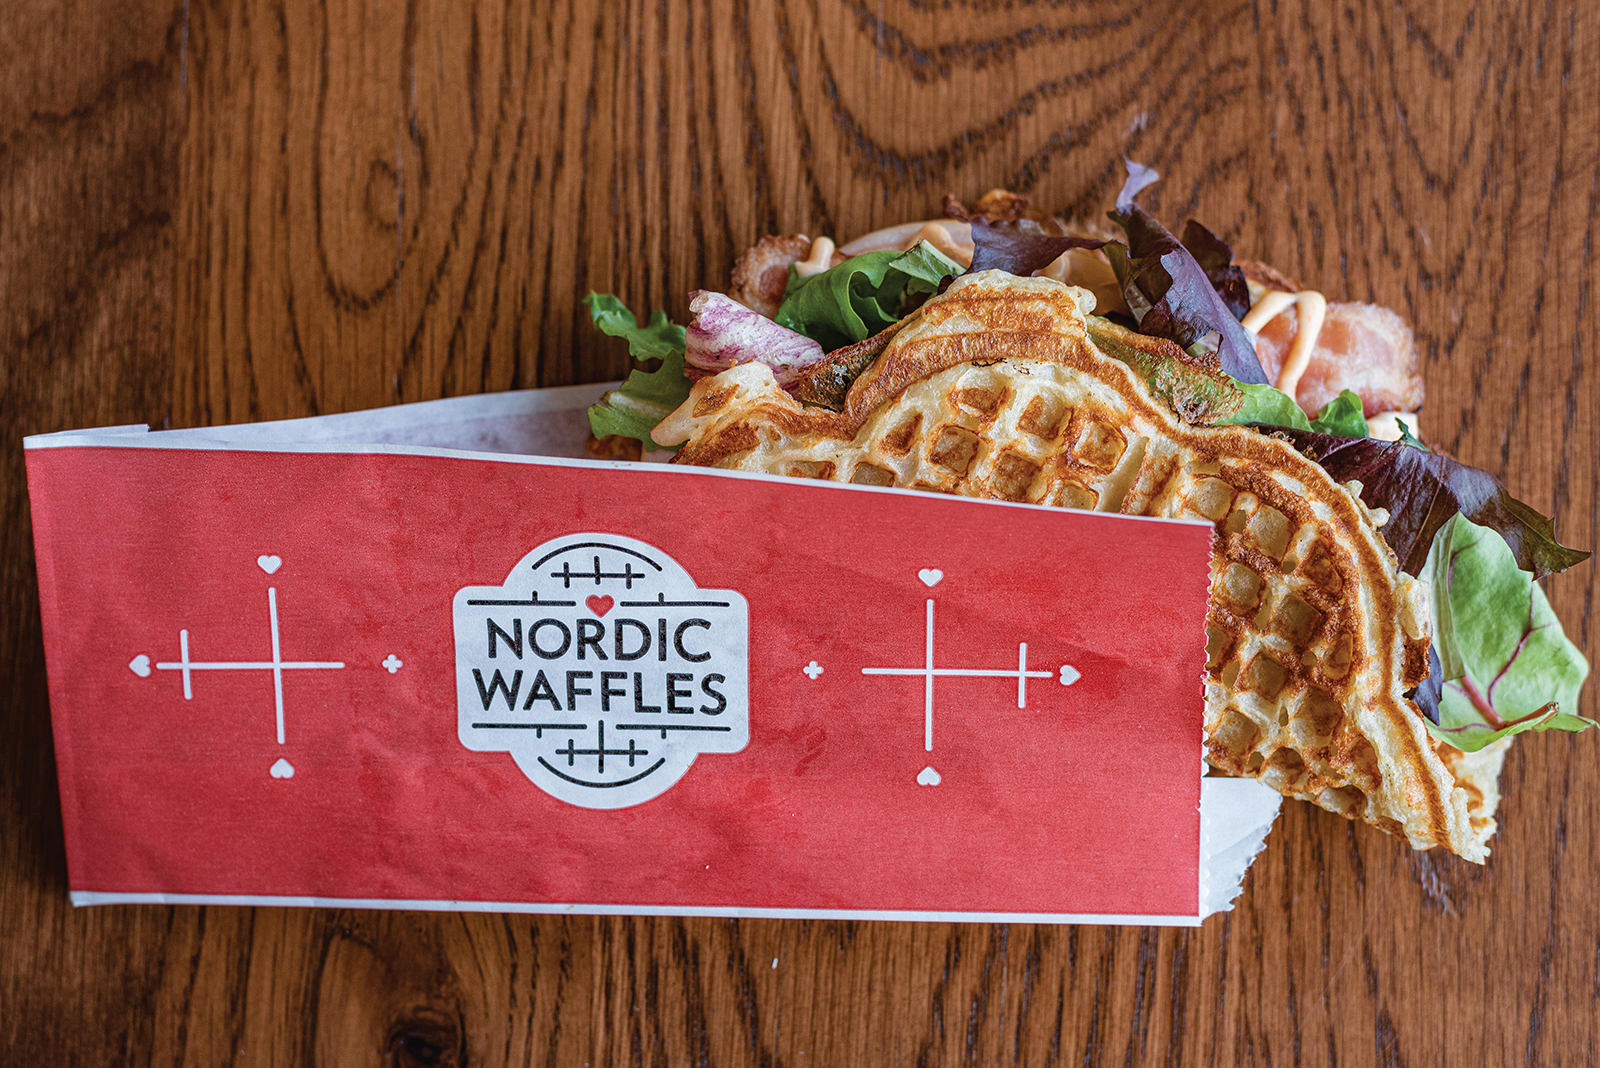 A savory selection from Nordic Waffles